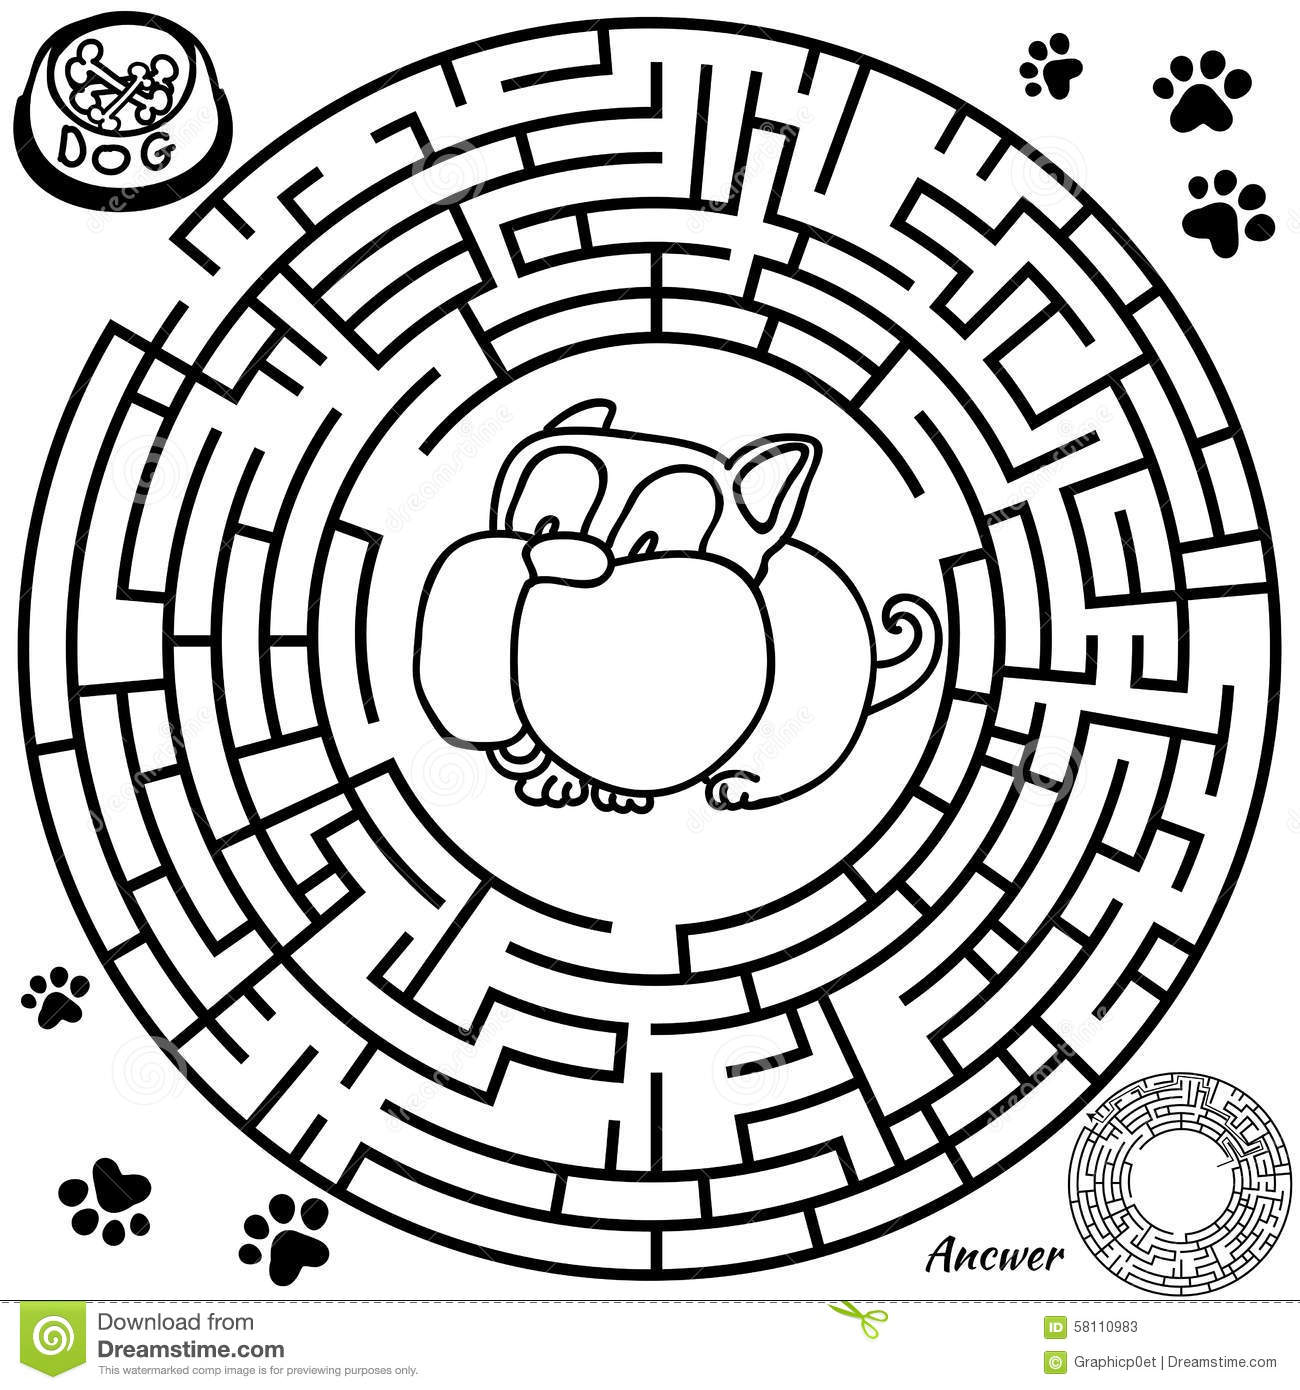 Funny Maze Game for kids. Maze or Labyrinth Game for Preschool ...